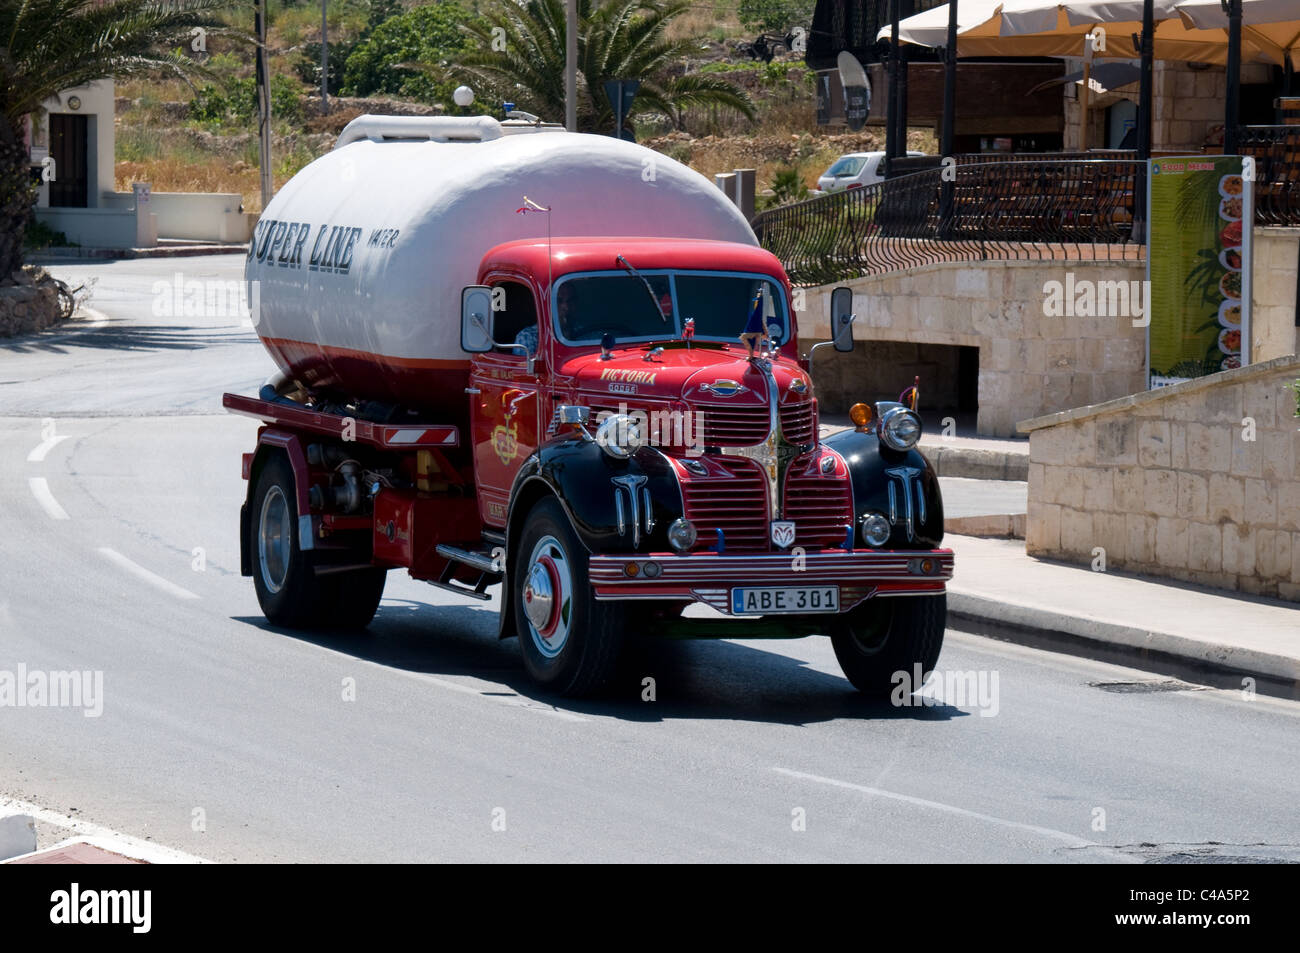 This 1940's Dodge lorry is still used in daily service as a water tanker,. Seen here in Mellieha bay,Malta - Stock Image